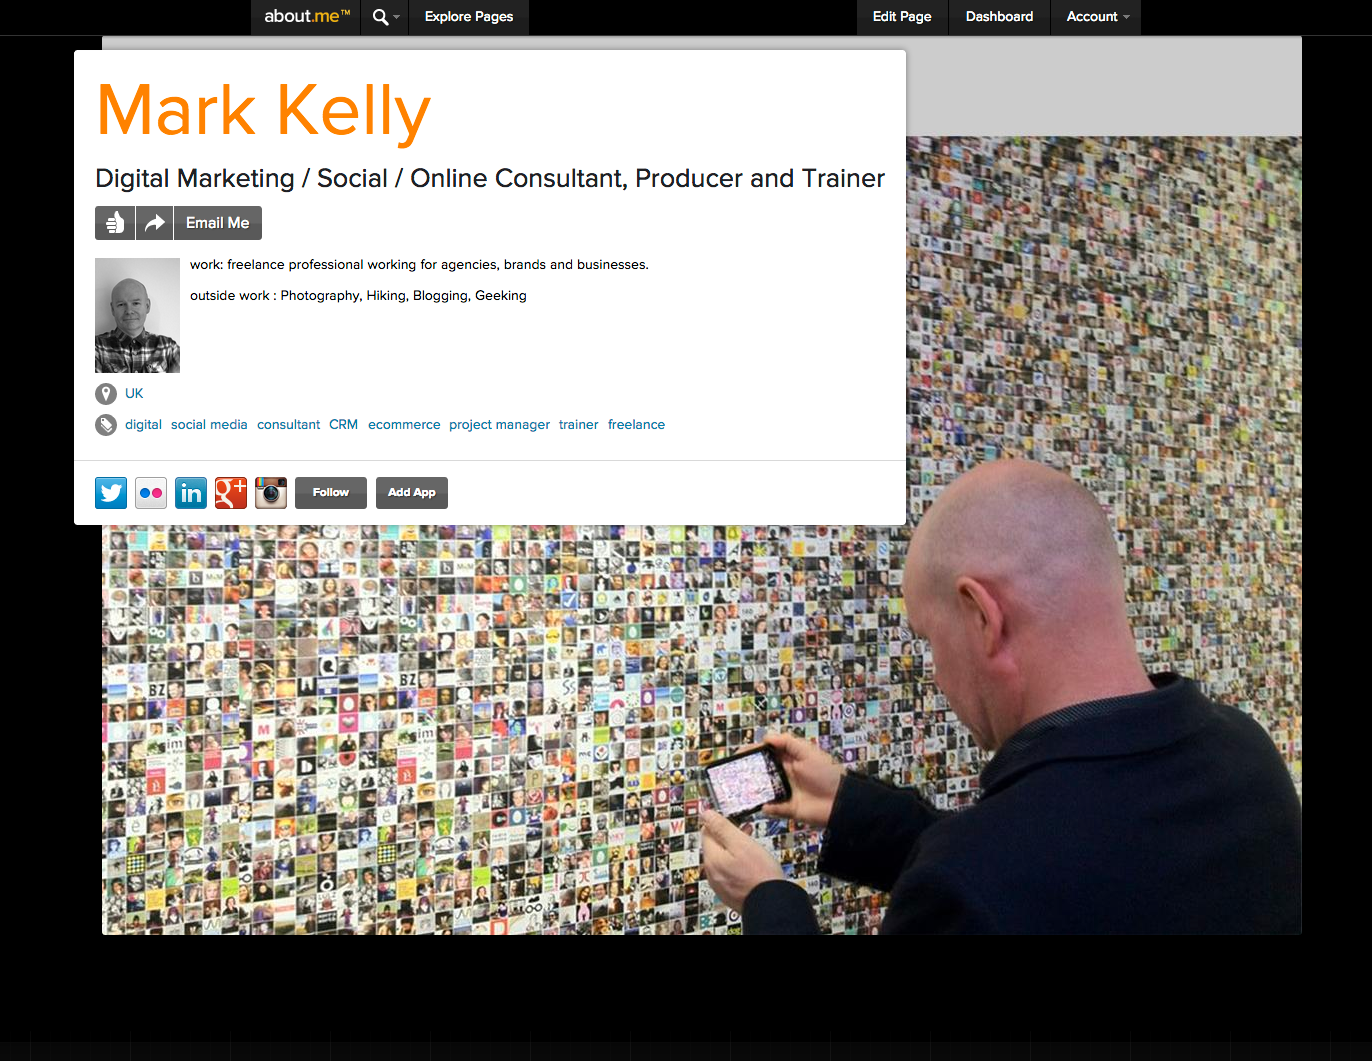 Mark Kelly digital about.me page